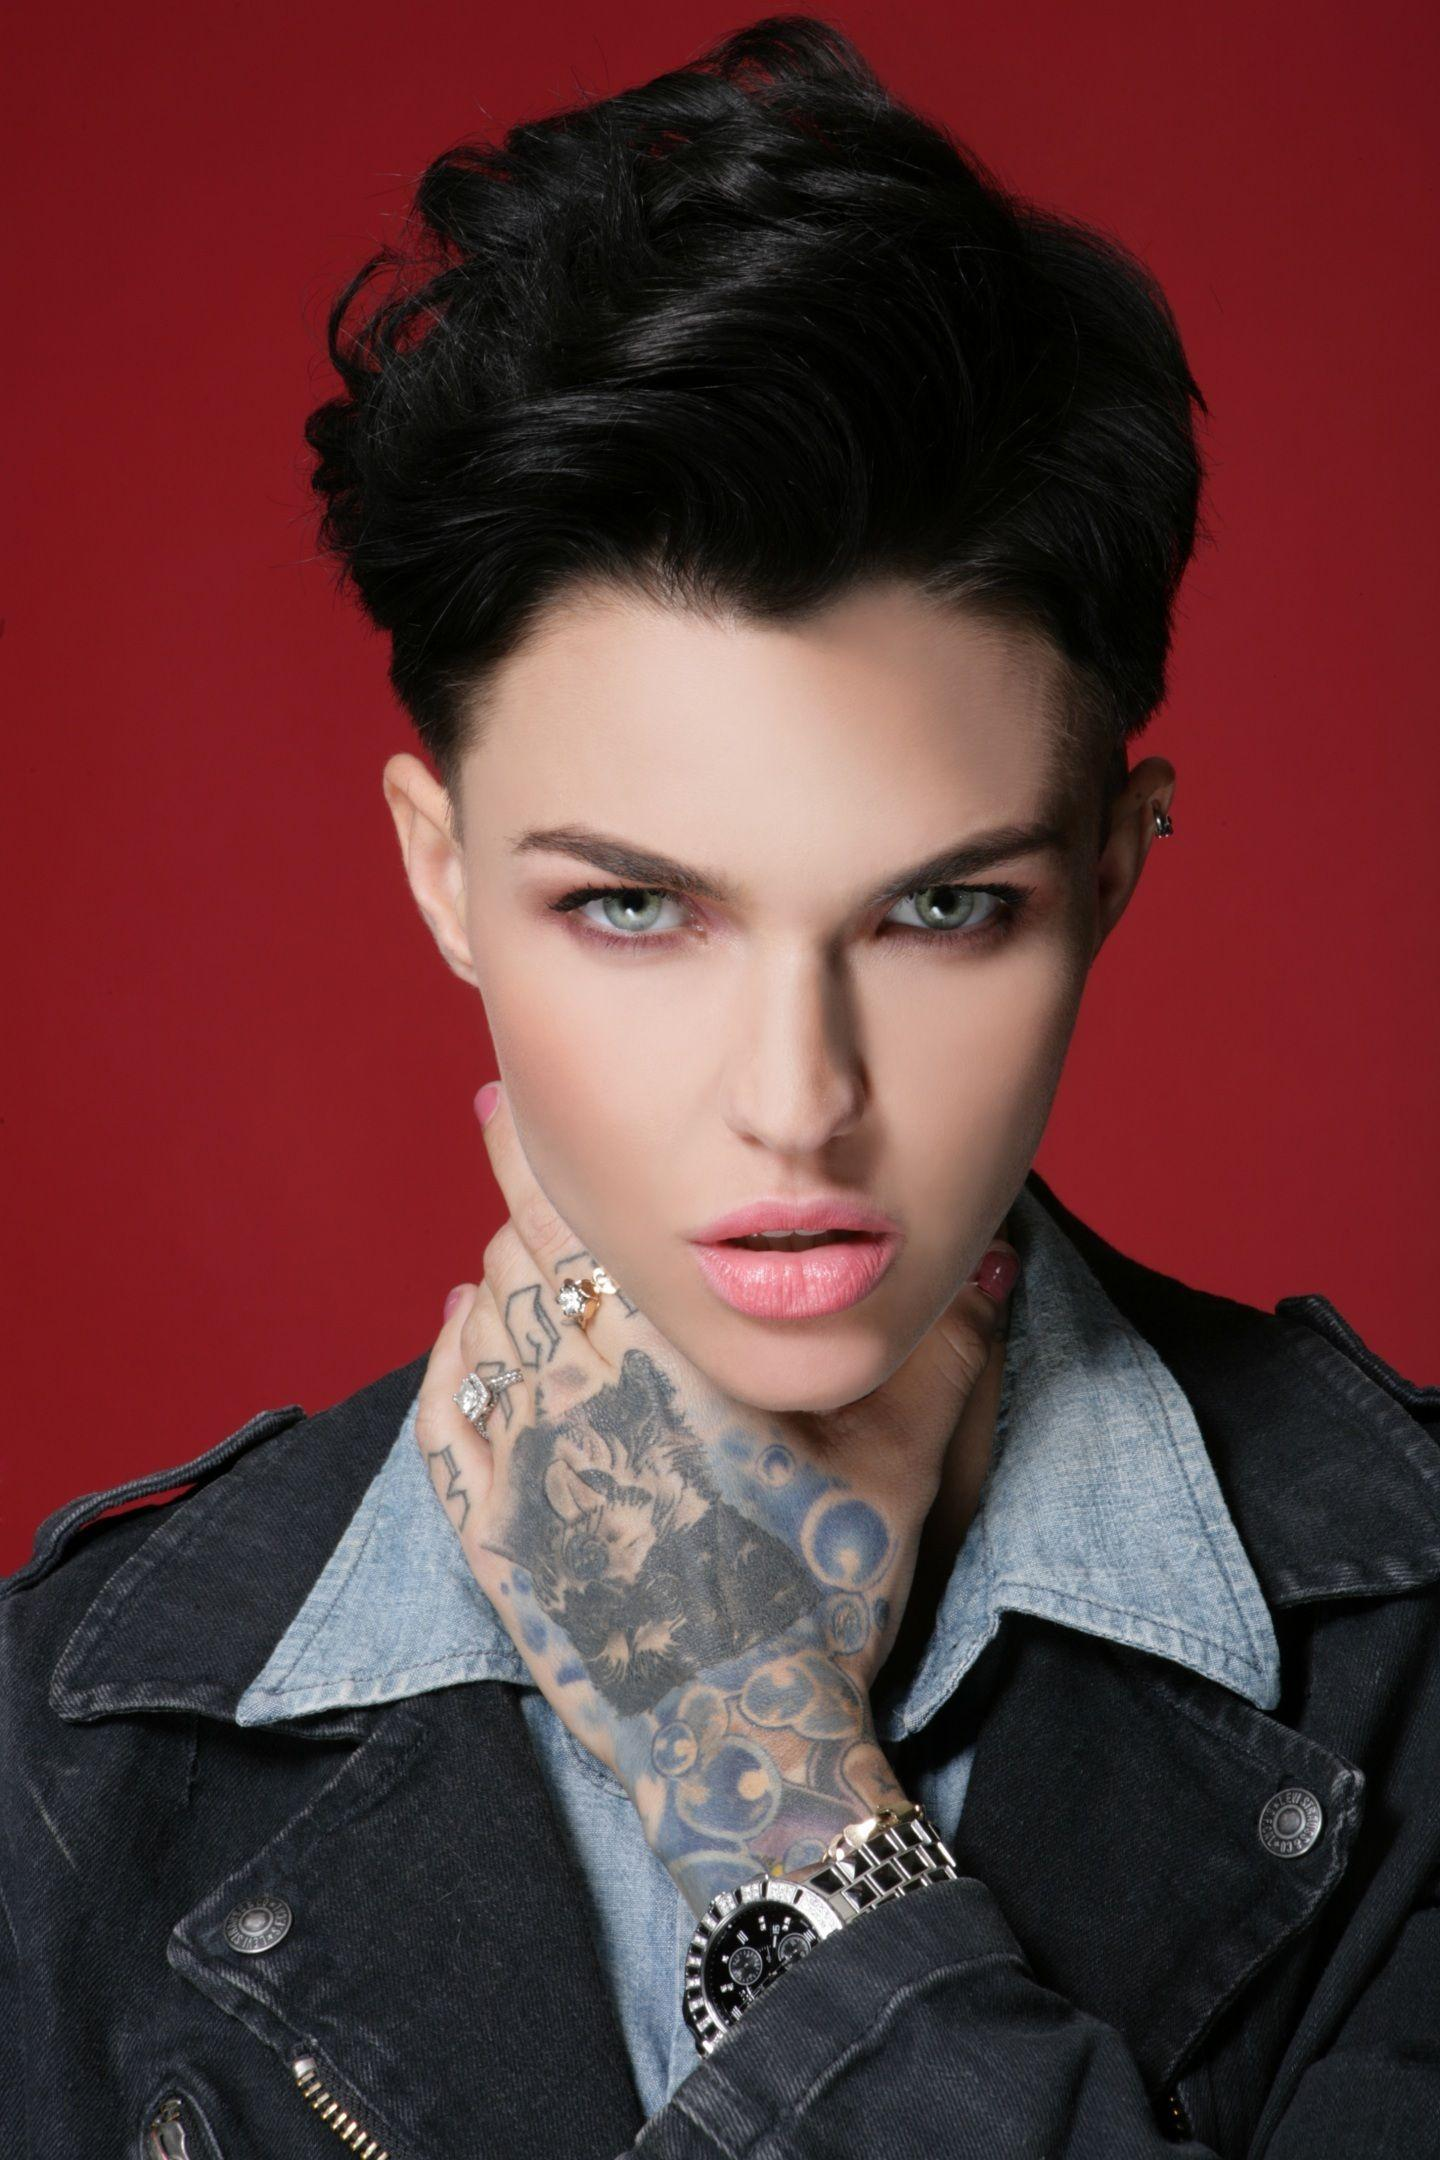 Tomboy Girl Wallpapers Ruby Rose Wallpapers Wallpaper Cave